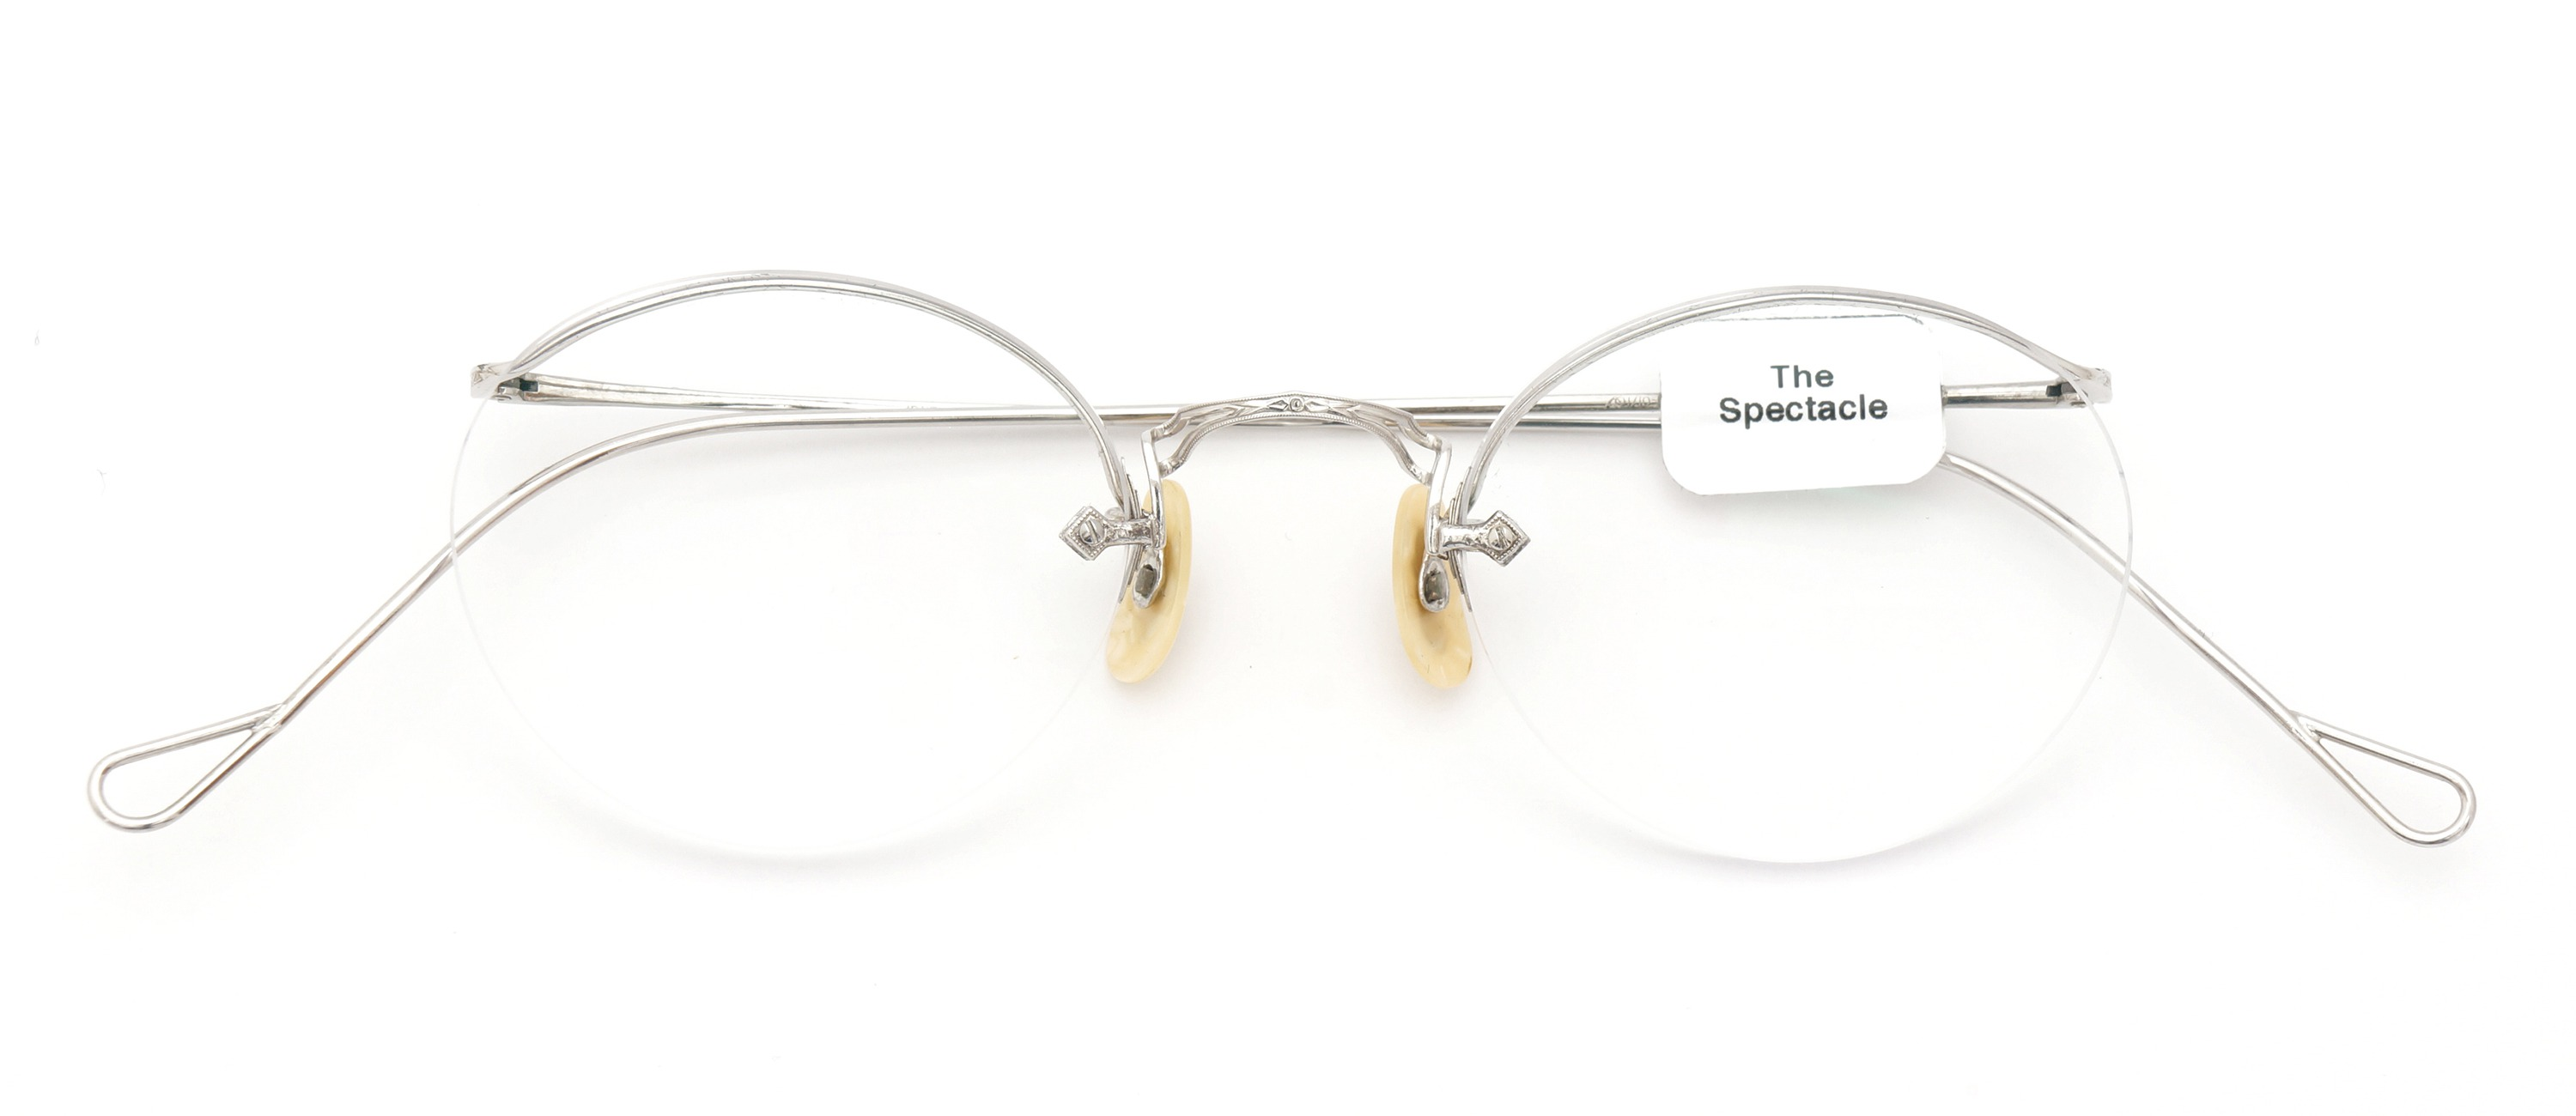 The Spectacle メガネ 1938 American Optical Numont Ful-Vue P-6 WG 45-23 イメージ2